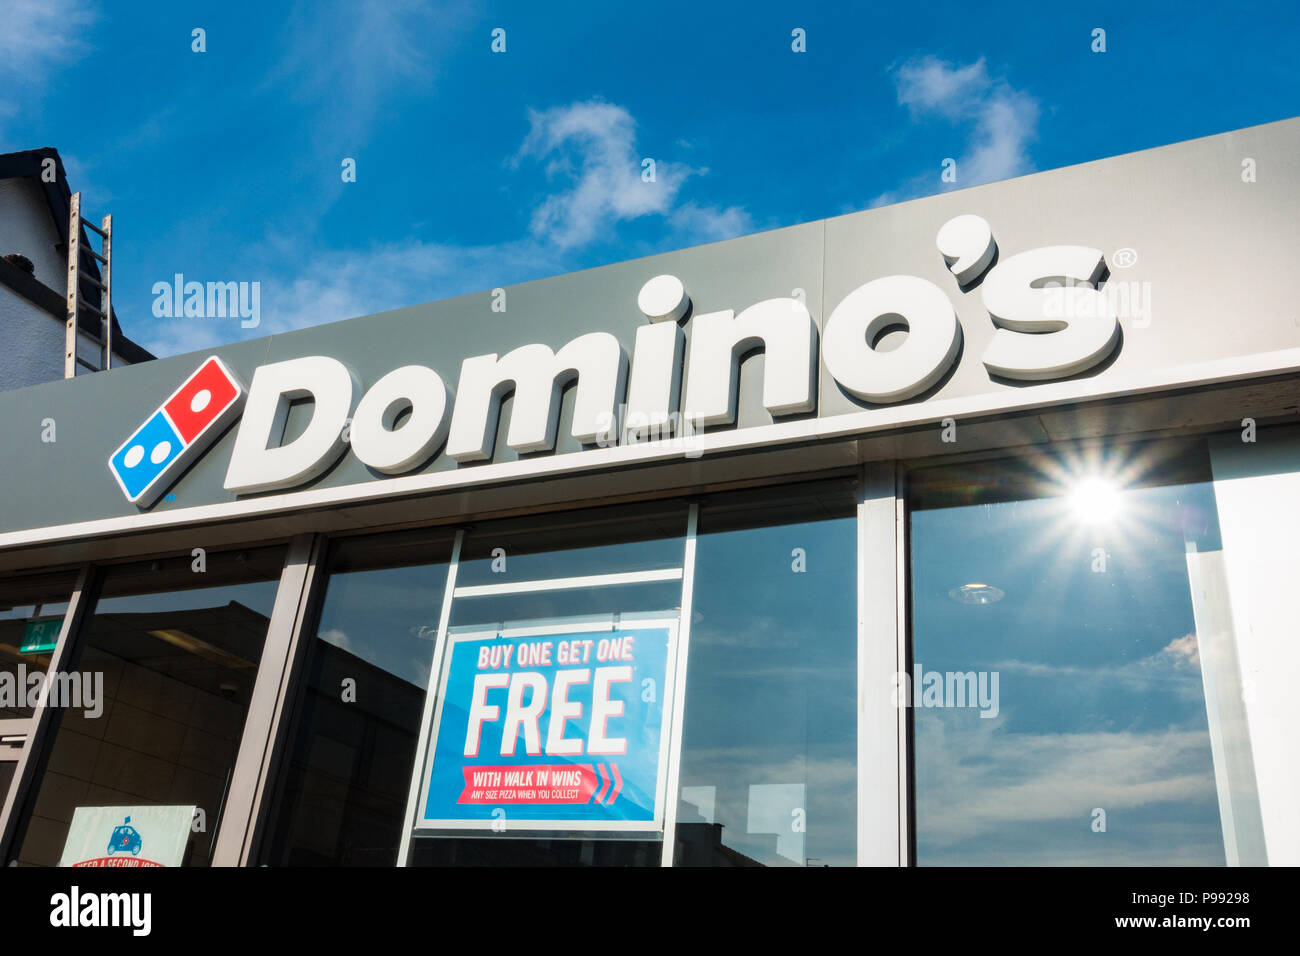 Domino's Pizza logo and sign over takeaway restaurant - Stock Image